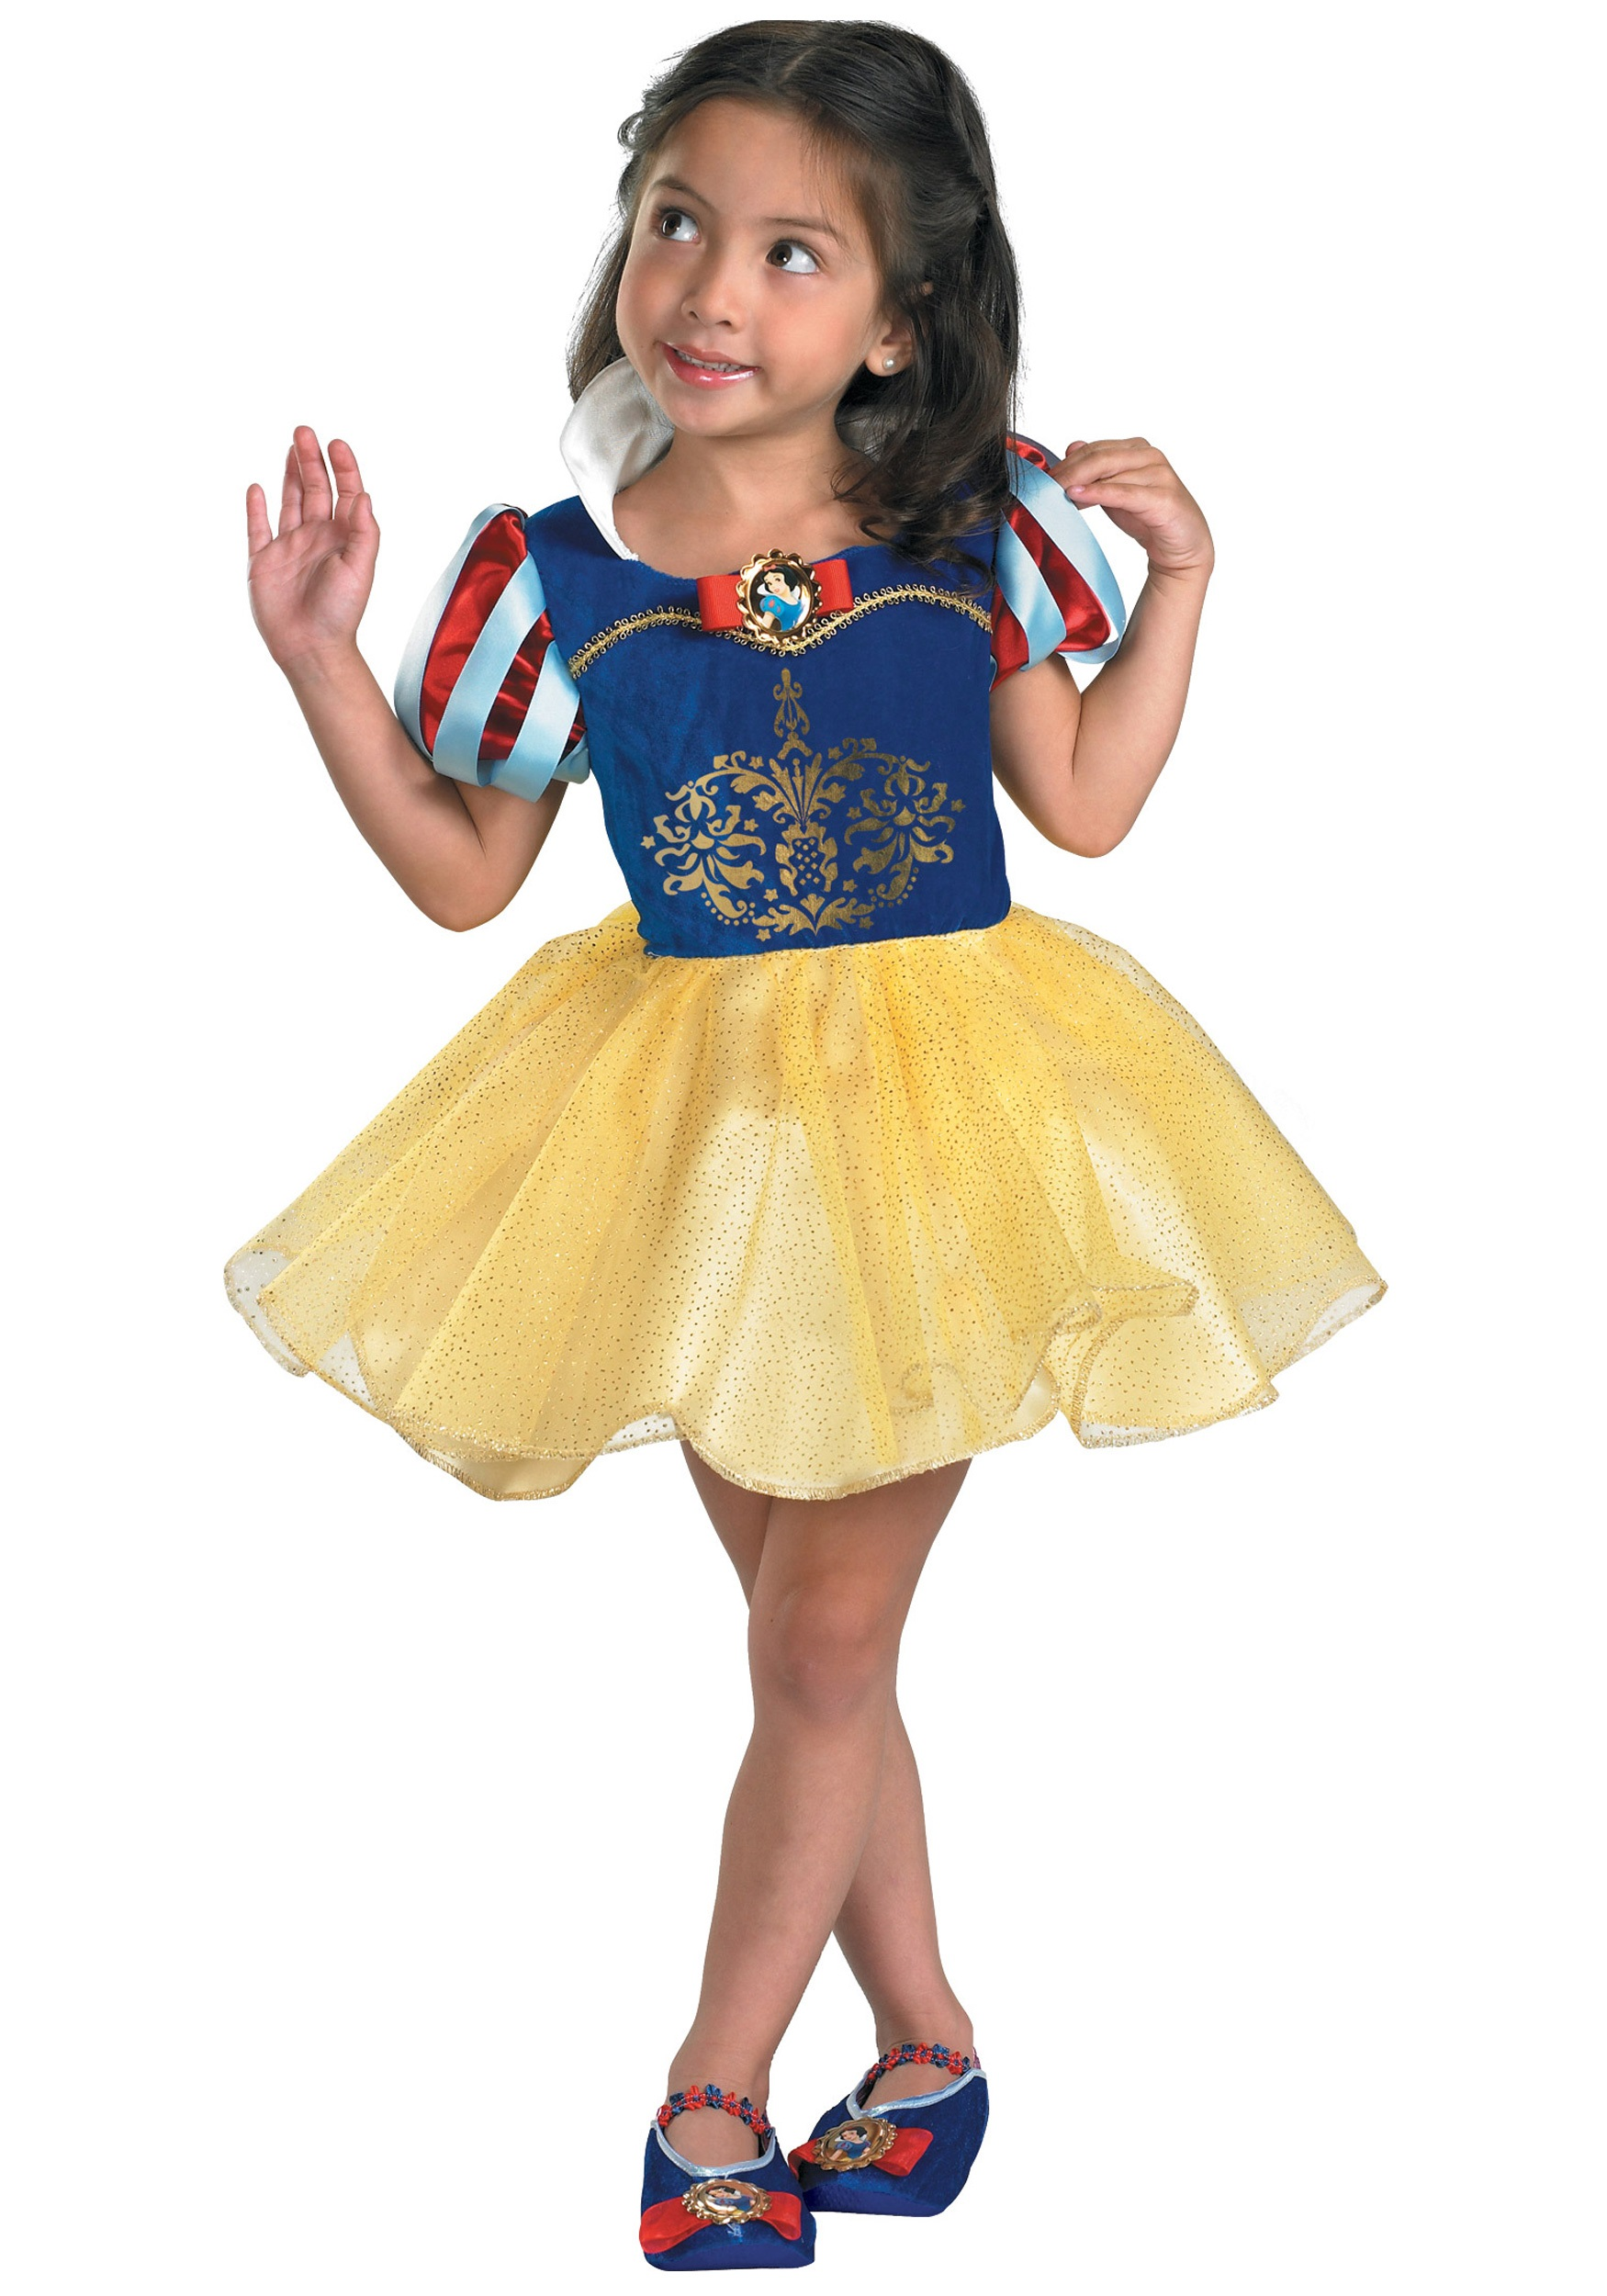 Toddler Snow White Ballerina Costume  sc 1 st  Halloween Costumes & Toddler Snow White Ballerina Costume - Halloween Costumes